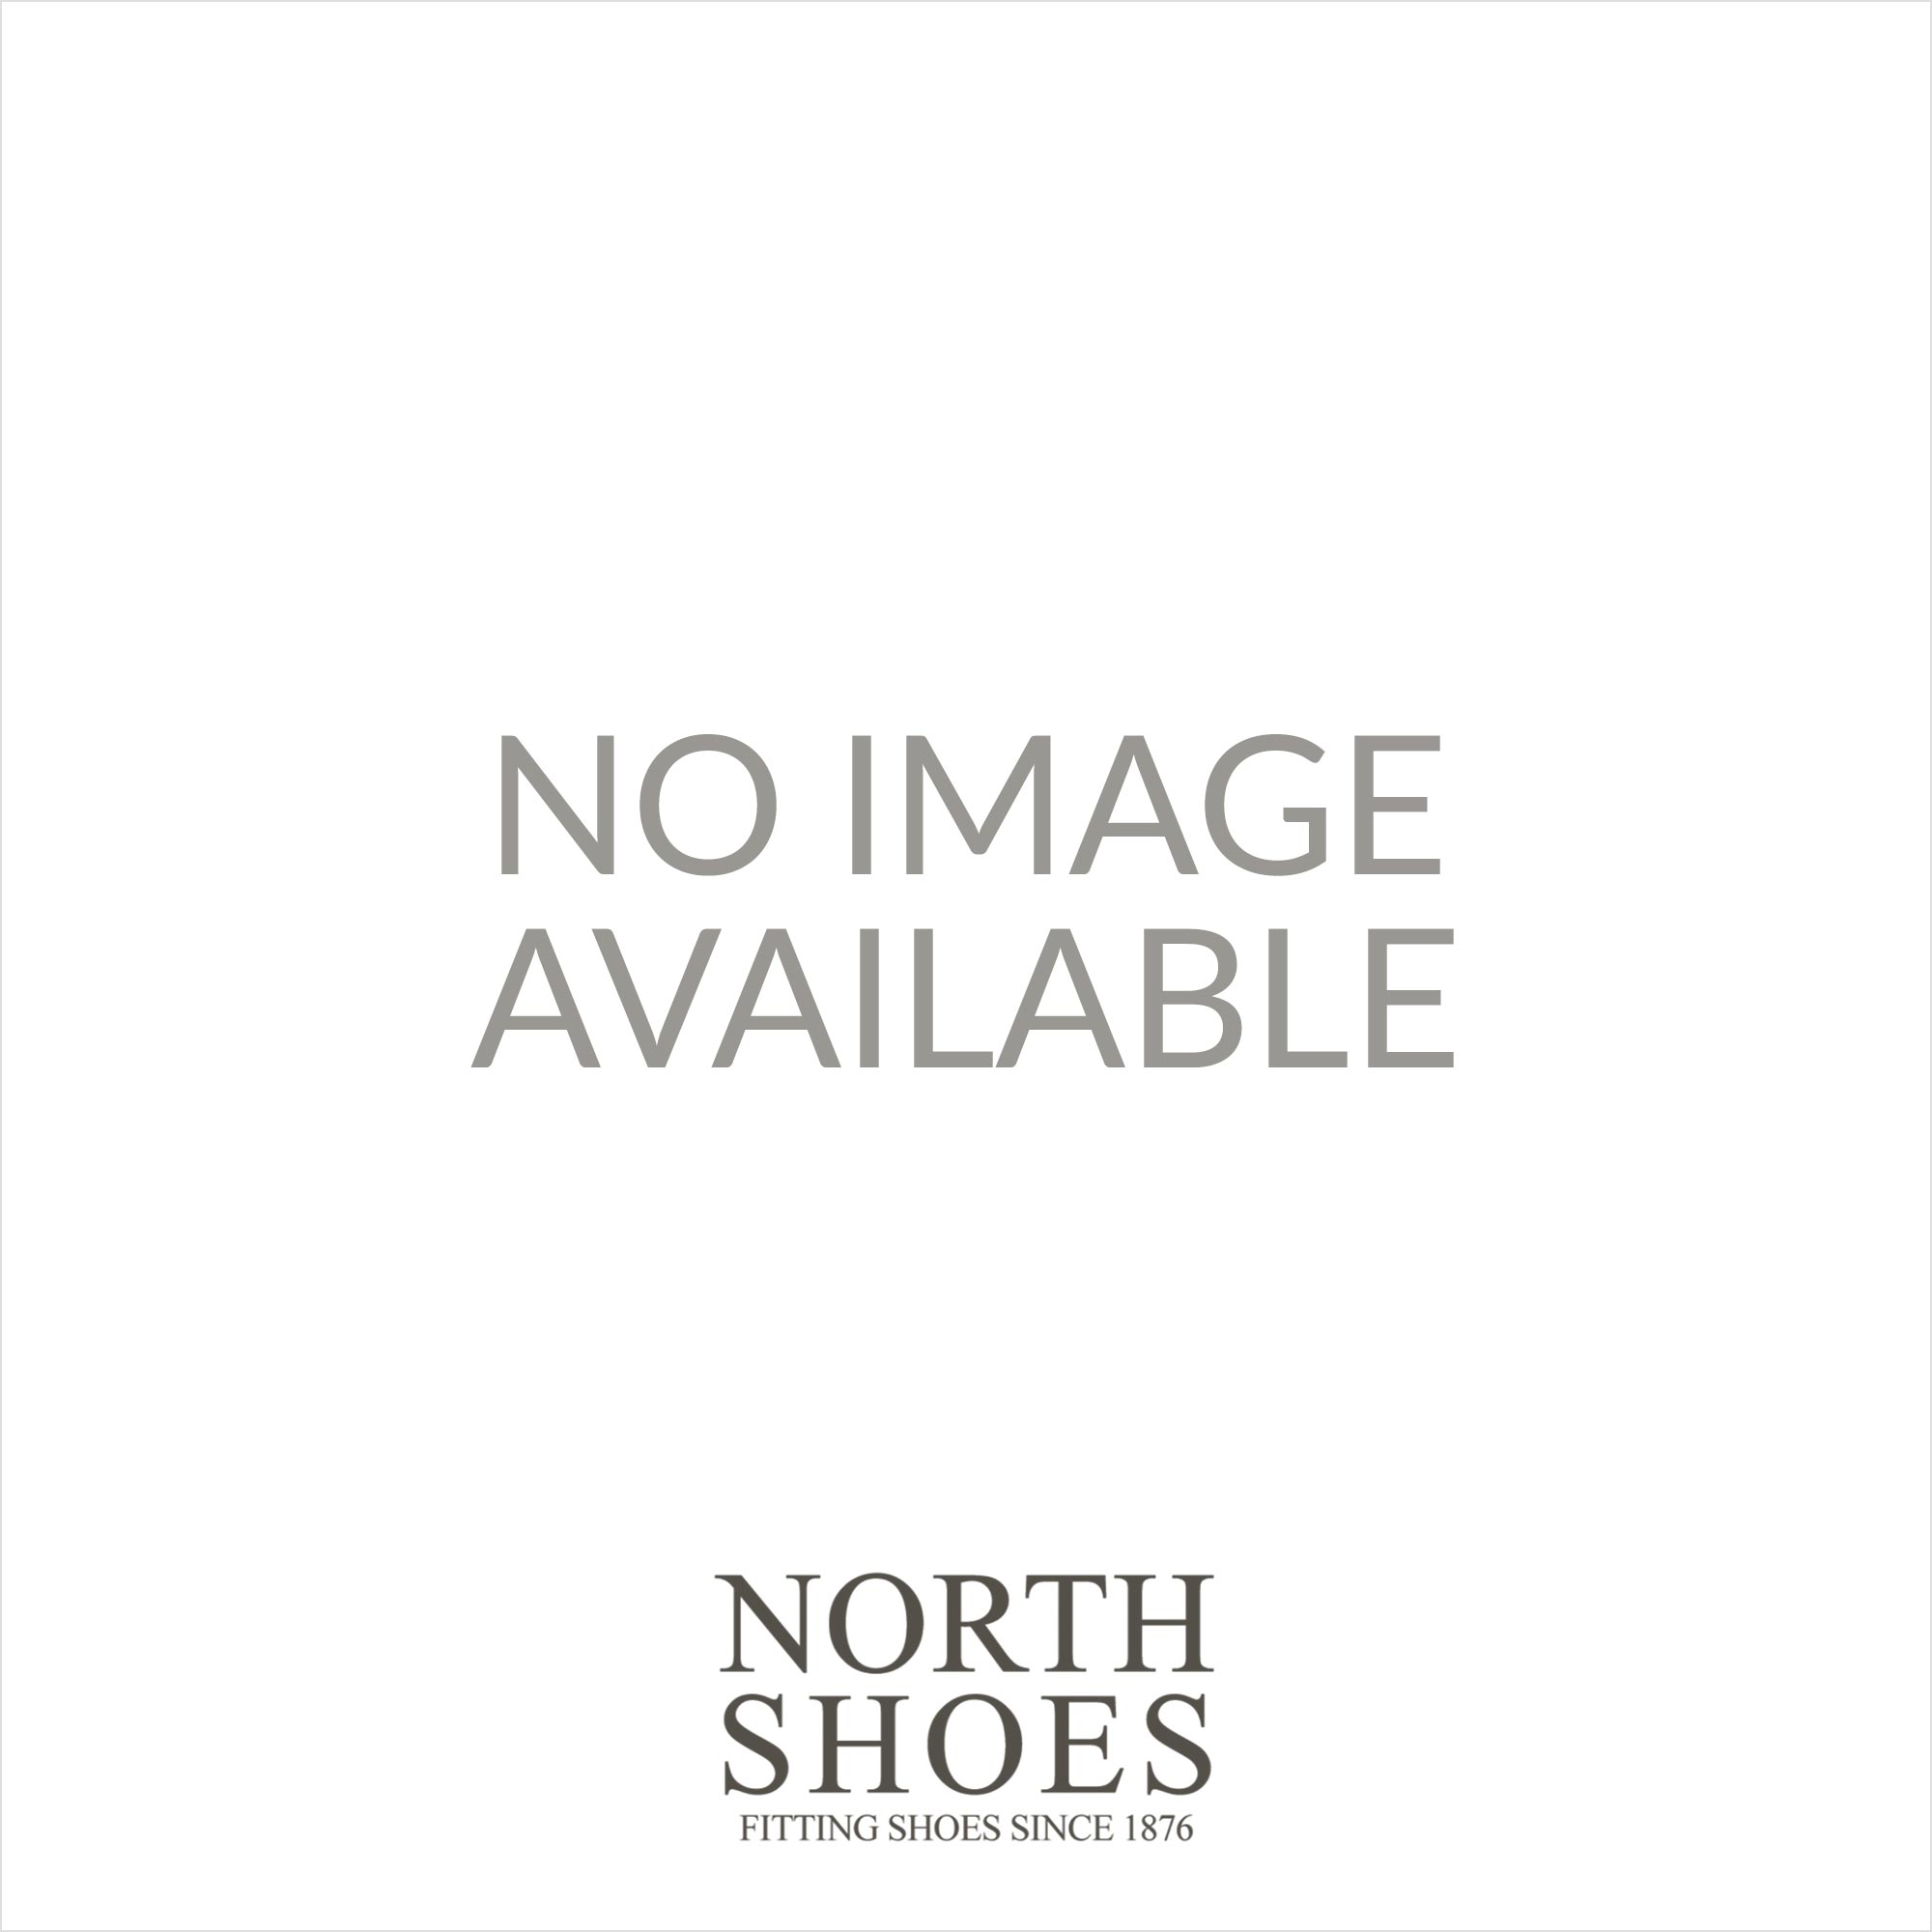 93780-14 Navy Womens Heeled Ankle Boot